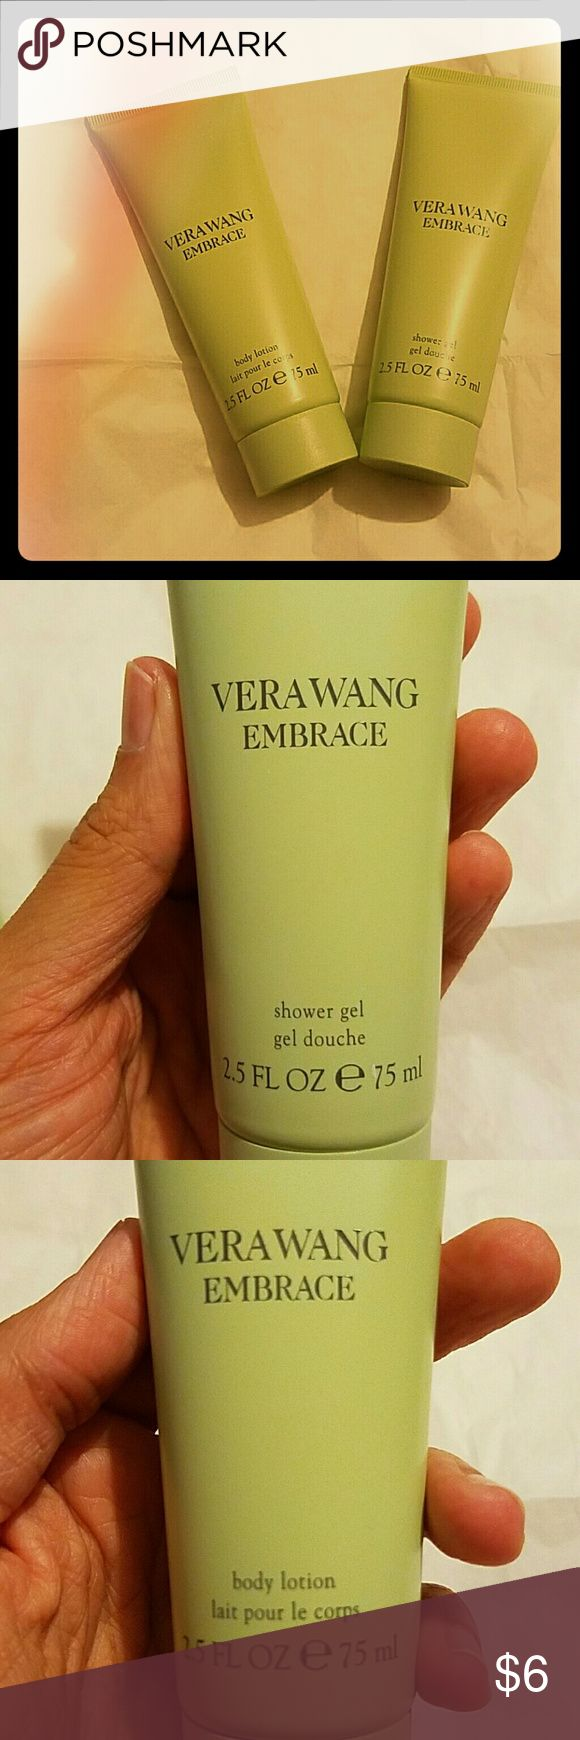 TWO Vera Wang Items MAKE IT BETTER, MAKE IT A BUNDLE!  1-Vera Wang Embrace Body Lotion 2-Vera Wang Embrace Shower Gel  Scent is green tea and pear blossom. This was part of a 3pc set, but I kept the perfume ;)   UNBOXED BUT NEVER USED! PRICE IS FOR BOTH!  ***Original price was actually $26 with perfume. Vera Wang Other